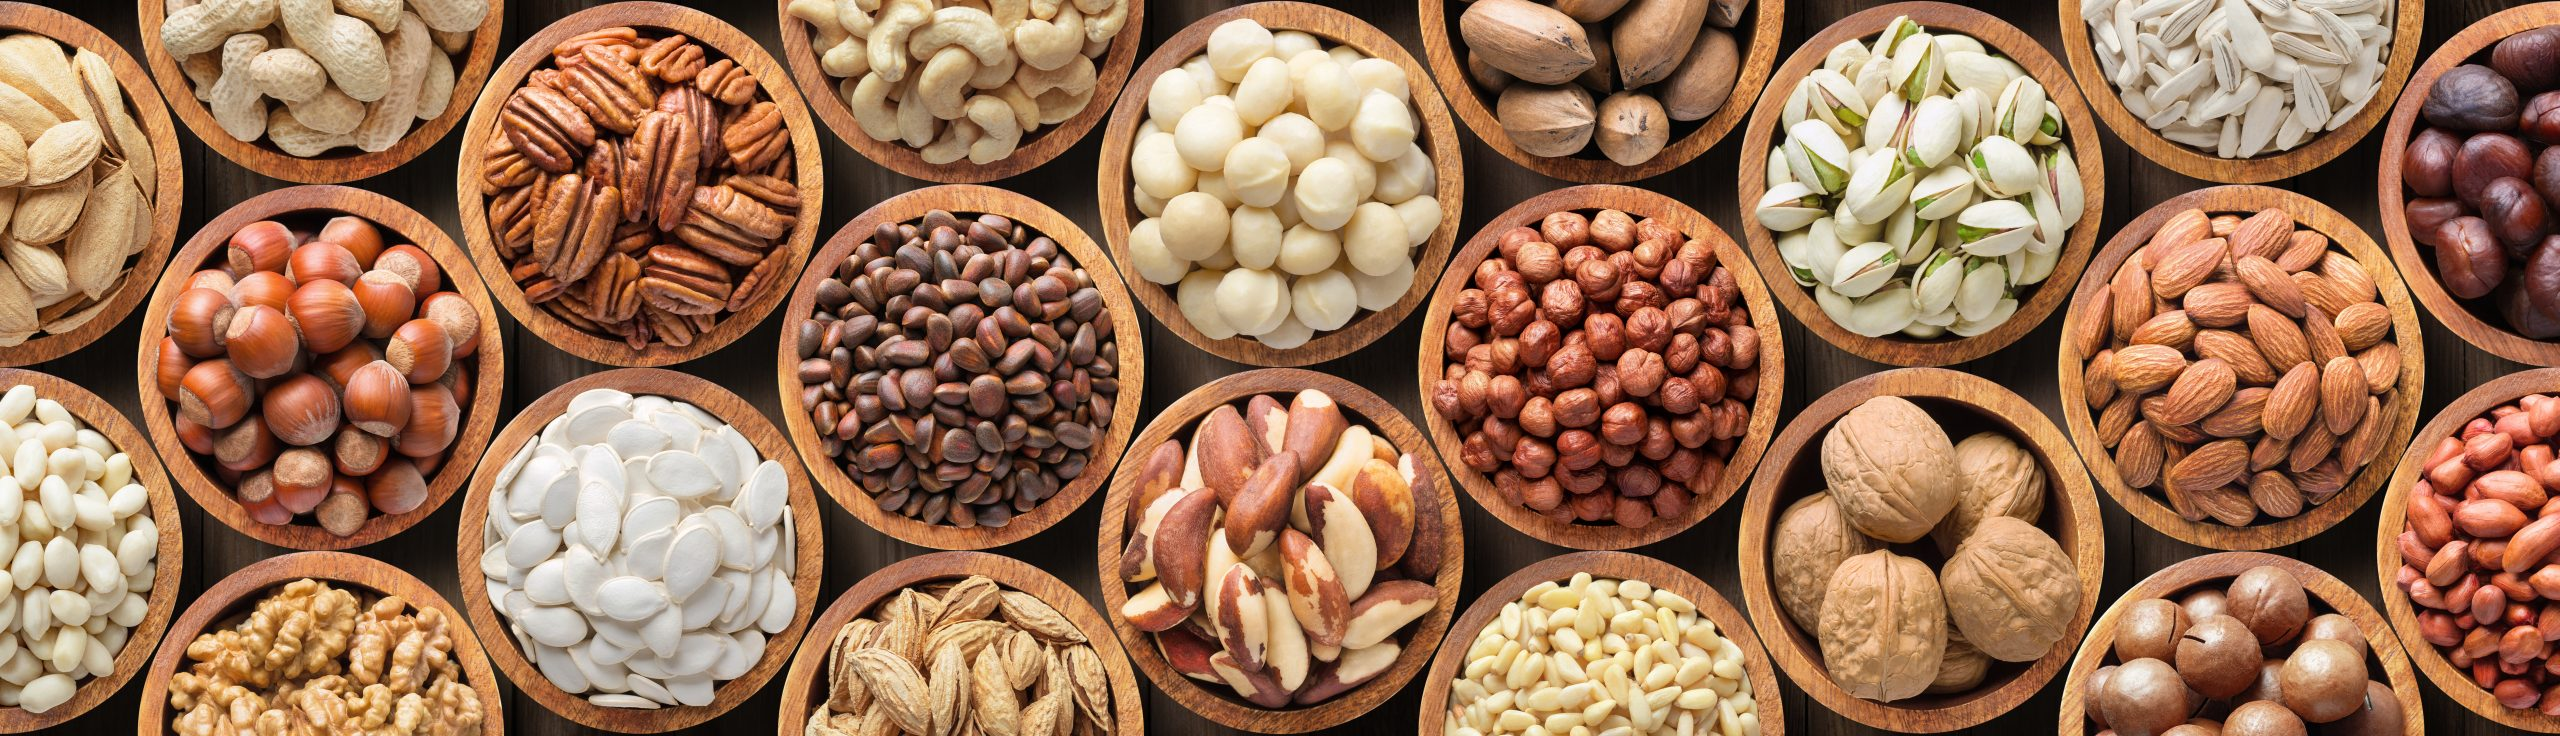 Prostate Cancer Prevention Superfoods: Nuts, Berries and Tea!